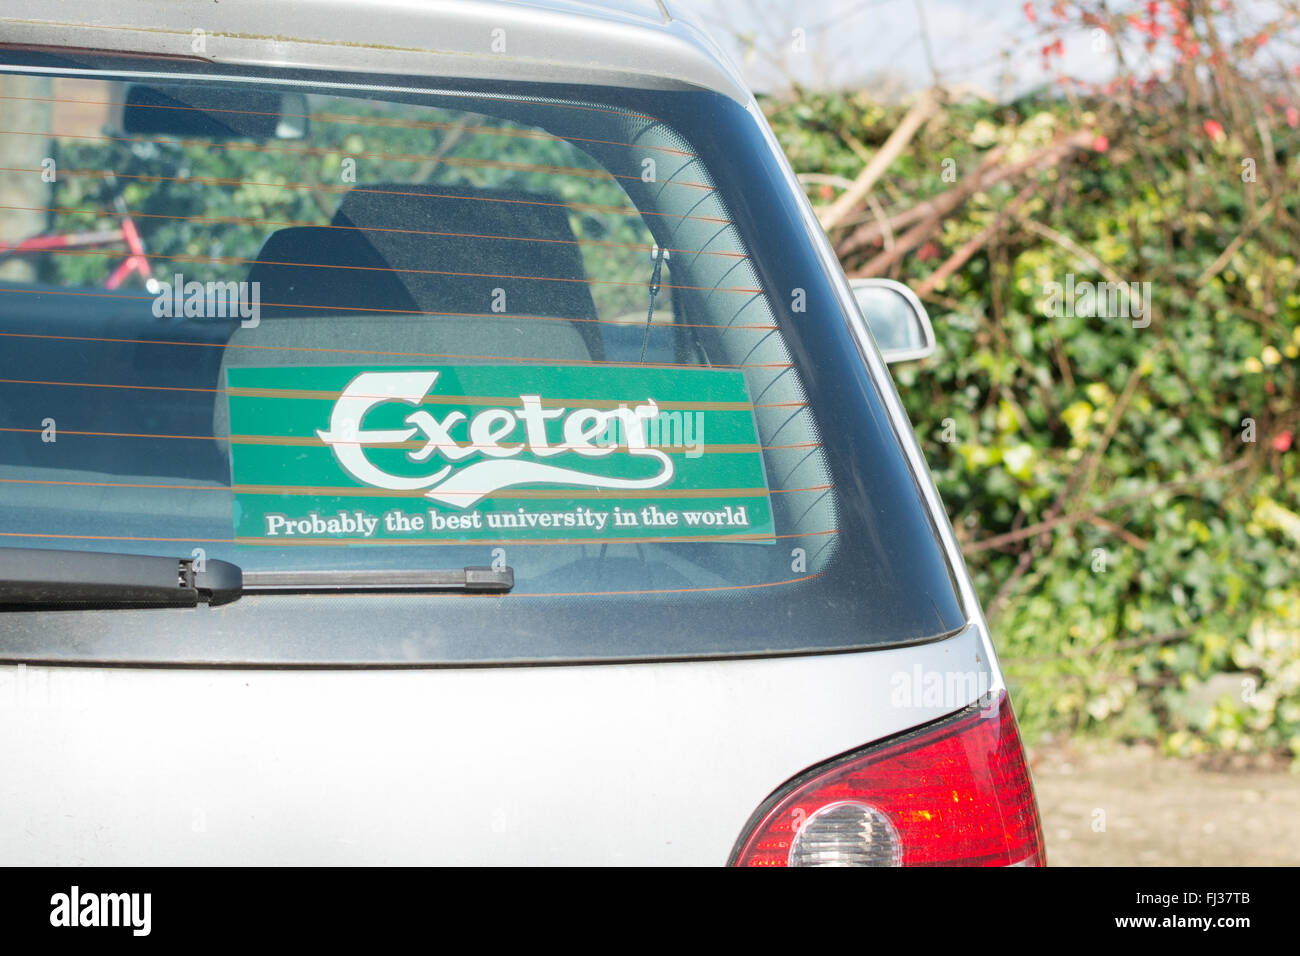 Exeter university students guild merchandise exeter probably the best university in the world sticker